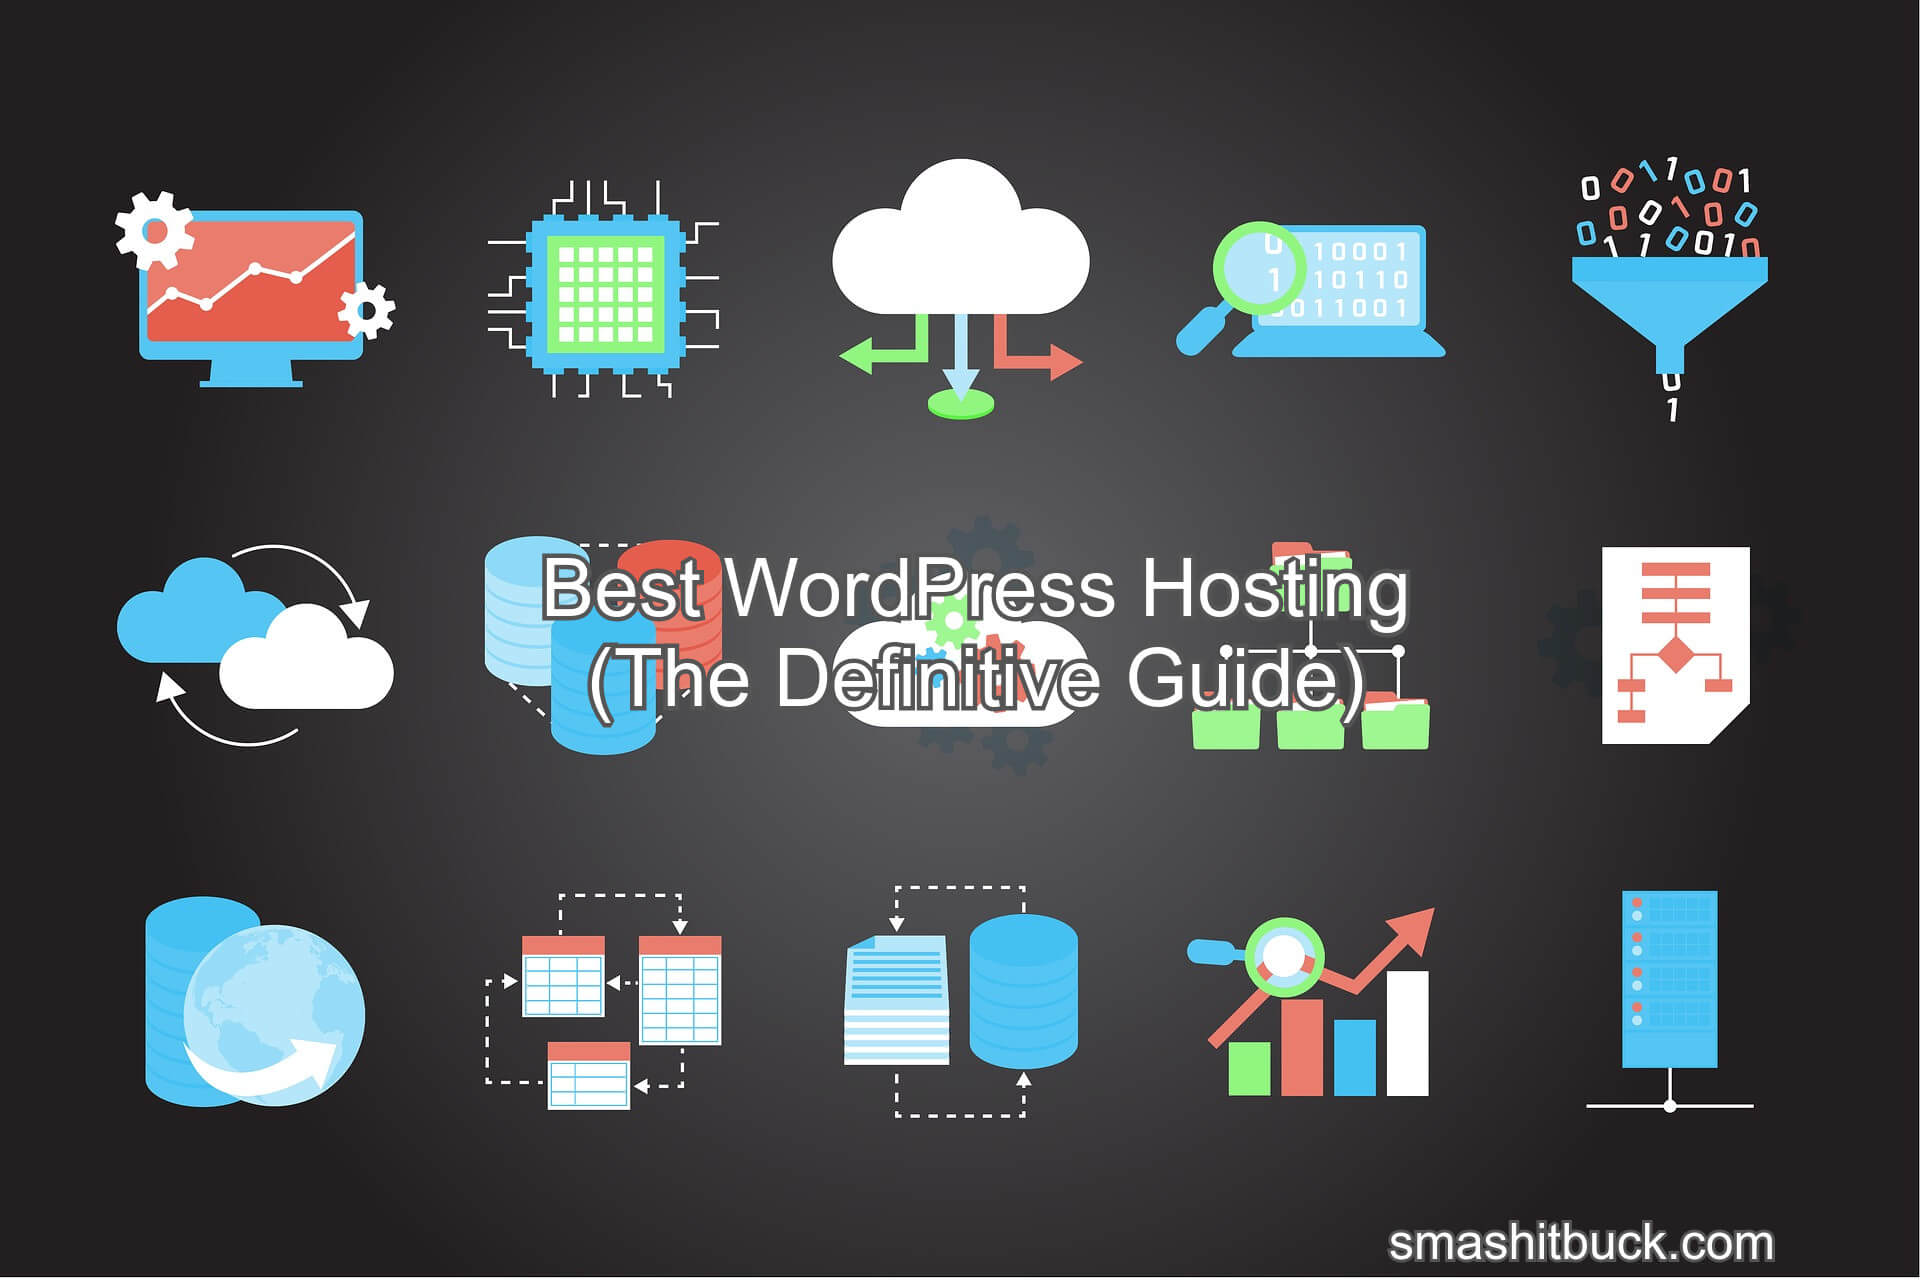 Best WordPress Hosting in 2021 (Compared)